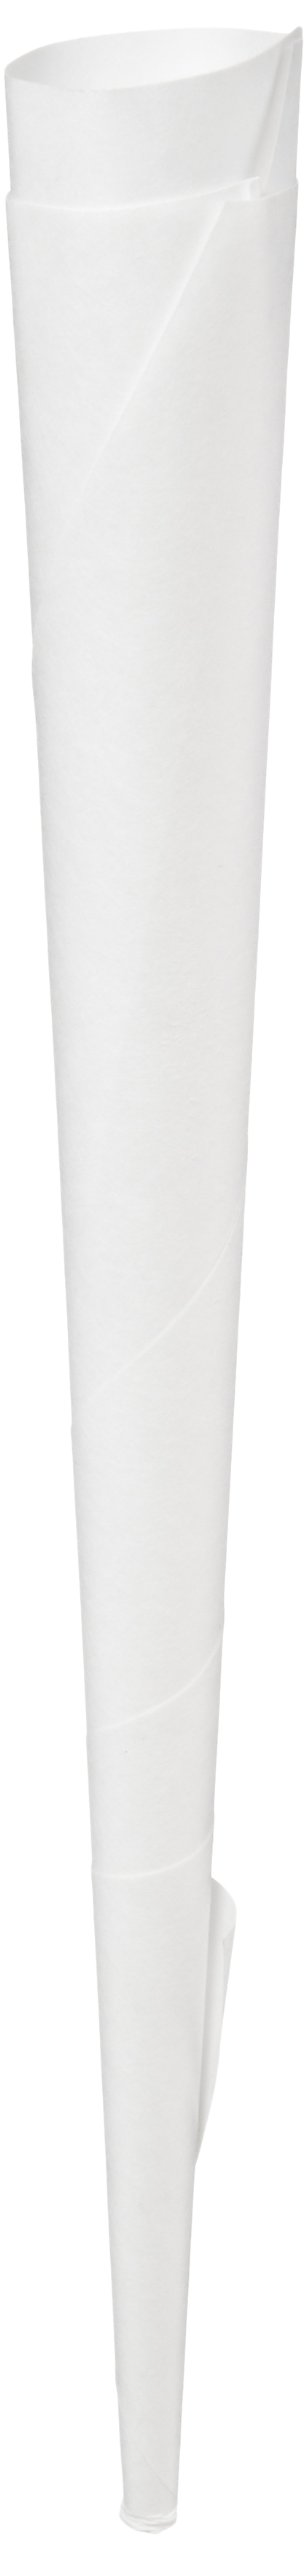 Benchmark 83005 Cotton Candy Paper Cone (Case of 1000)